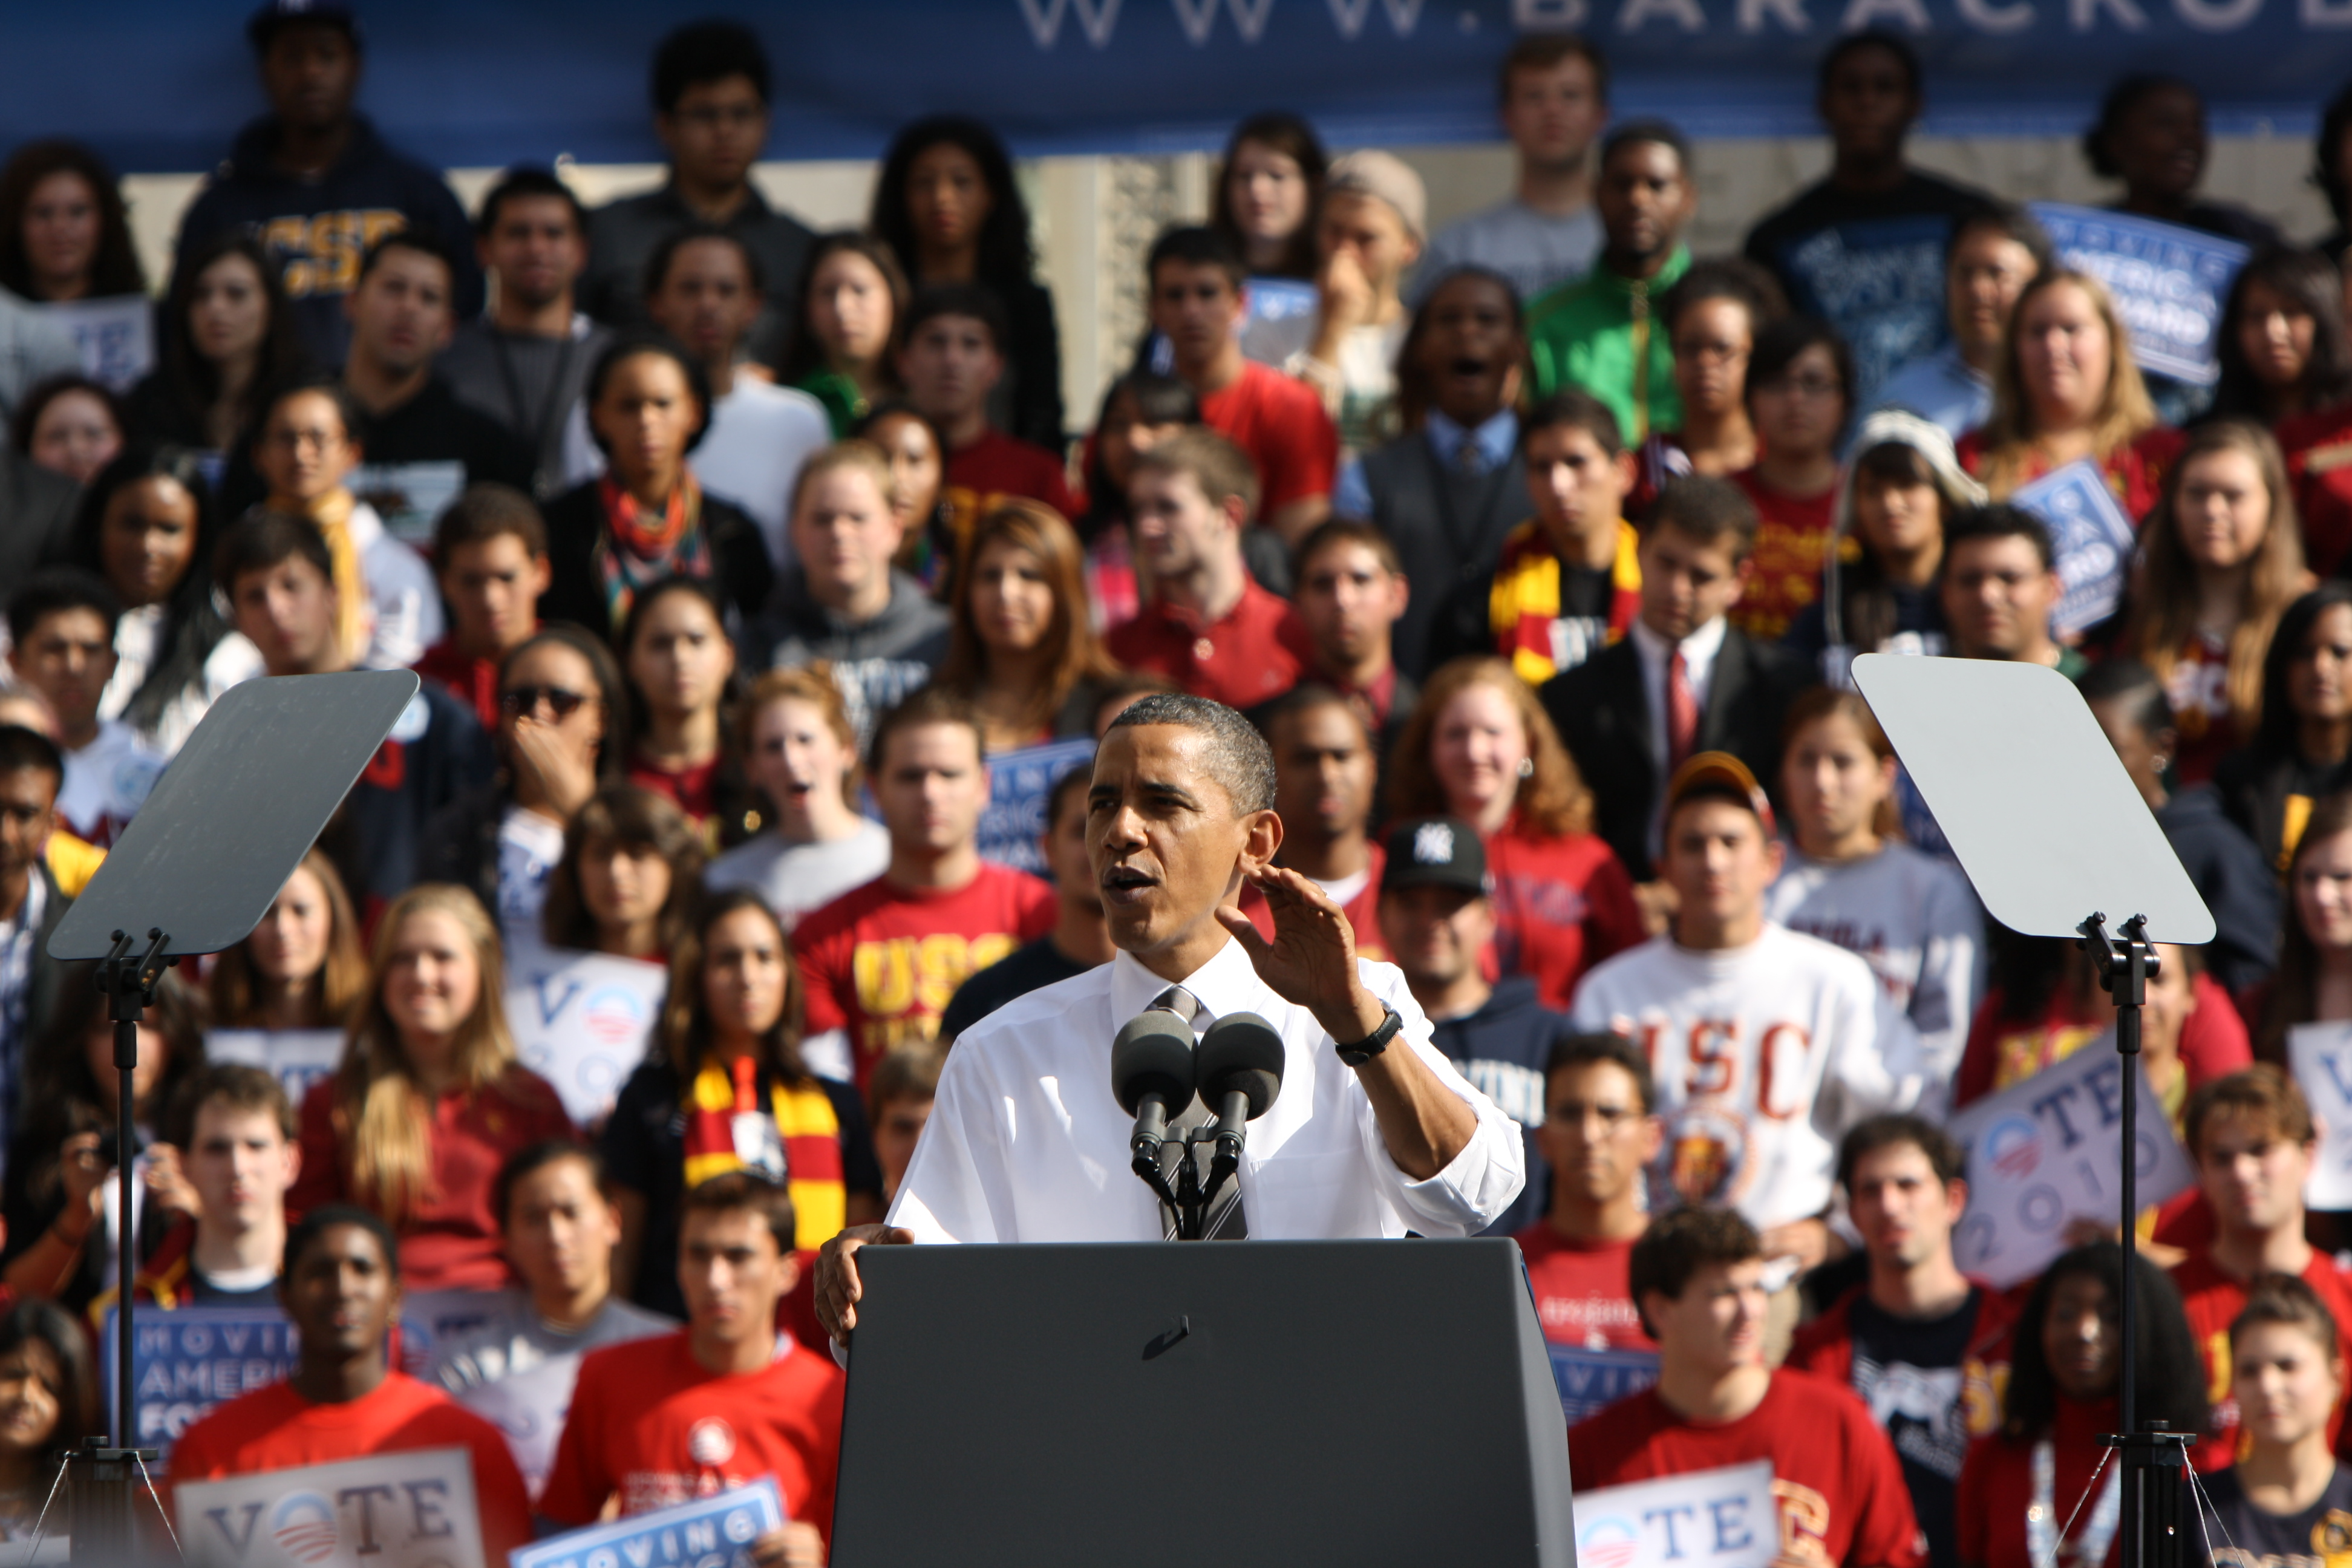 Image of President Obama giving a speech in front of a crowd.